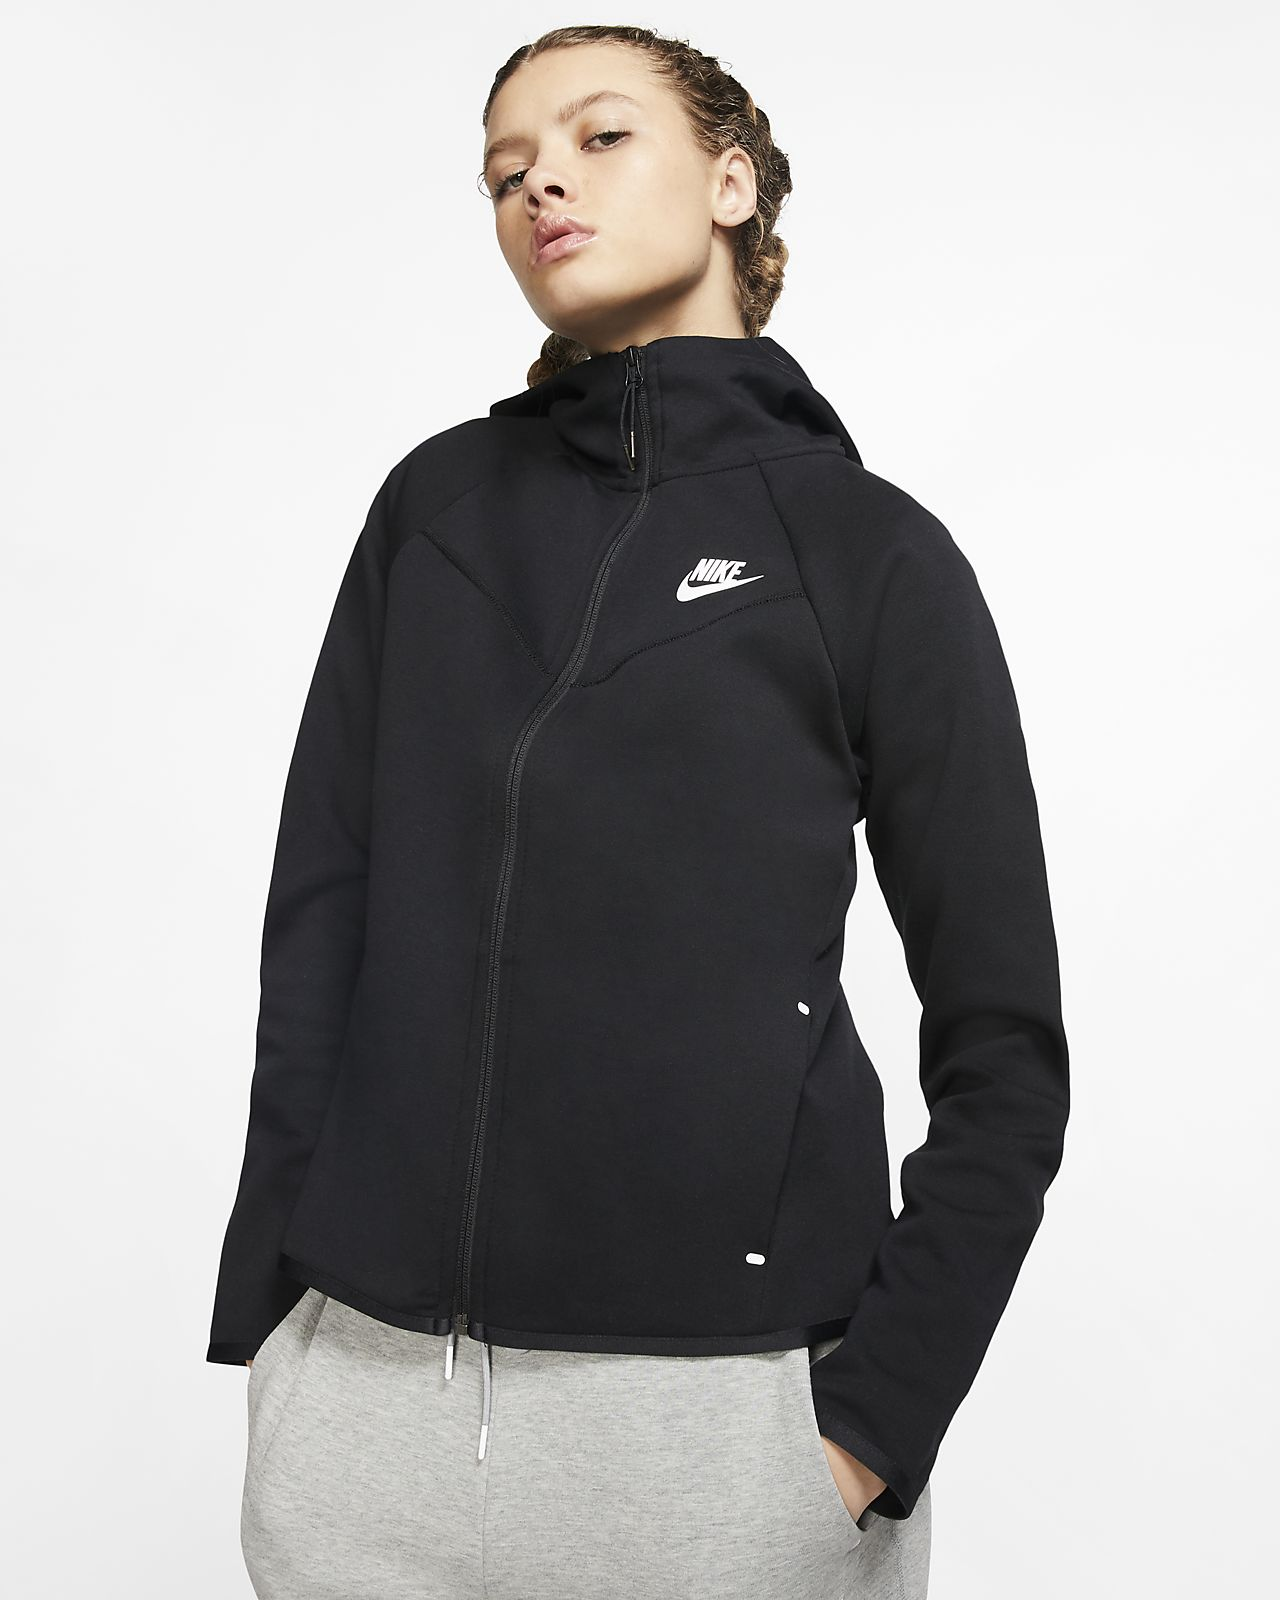 Nike Sportswear Windrunner Training Jacket Women White, Black